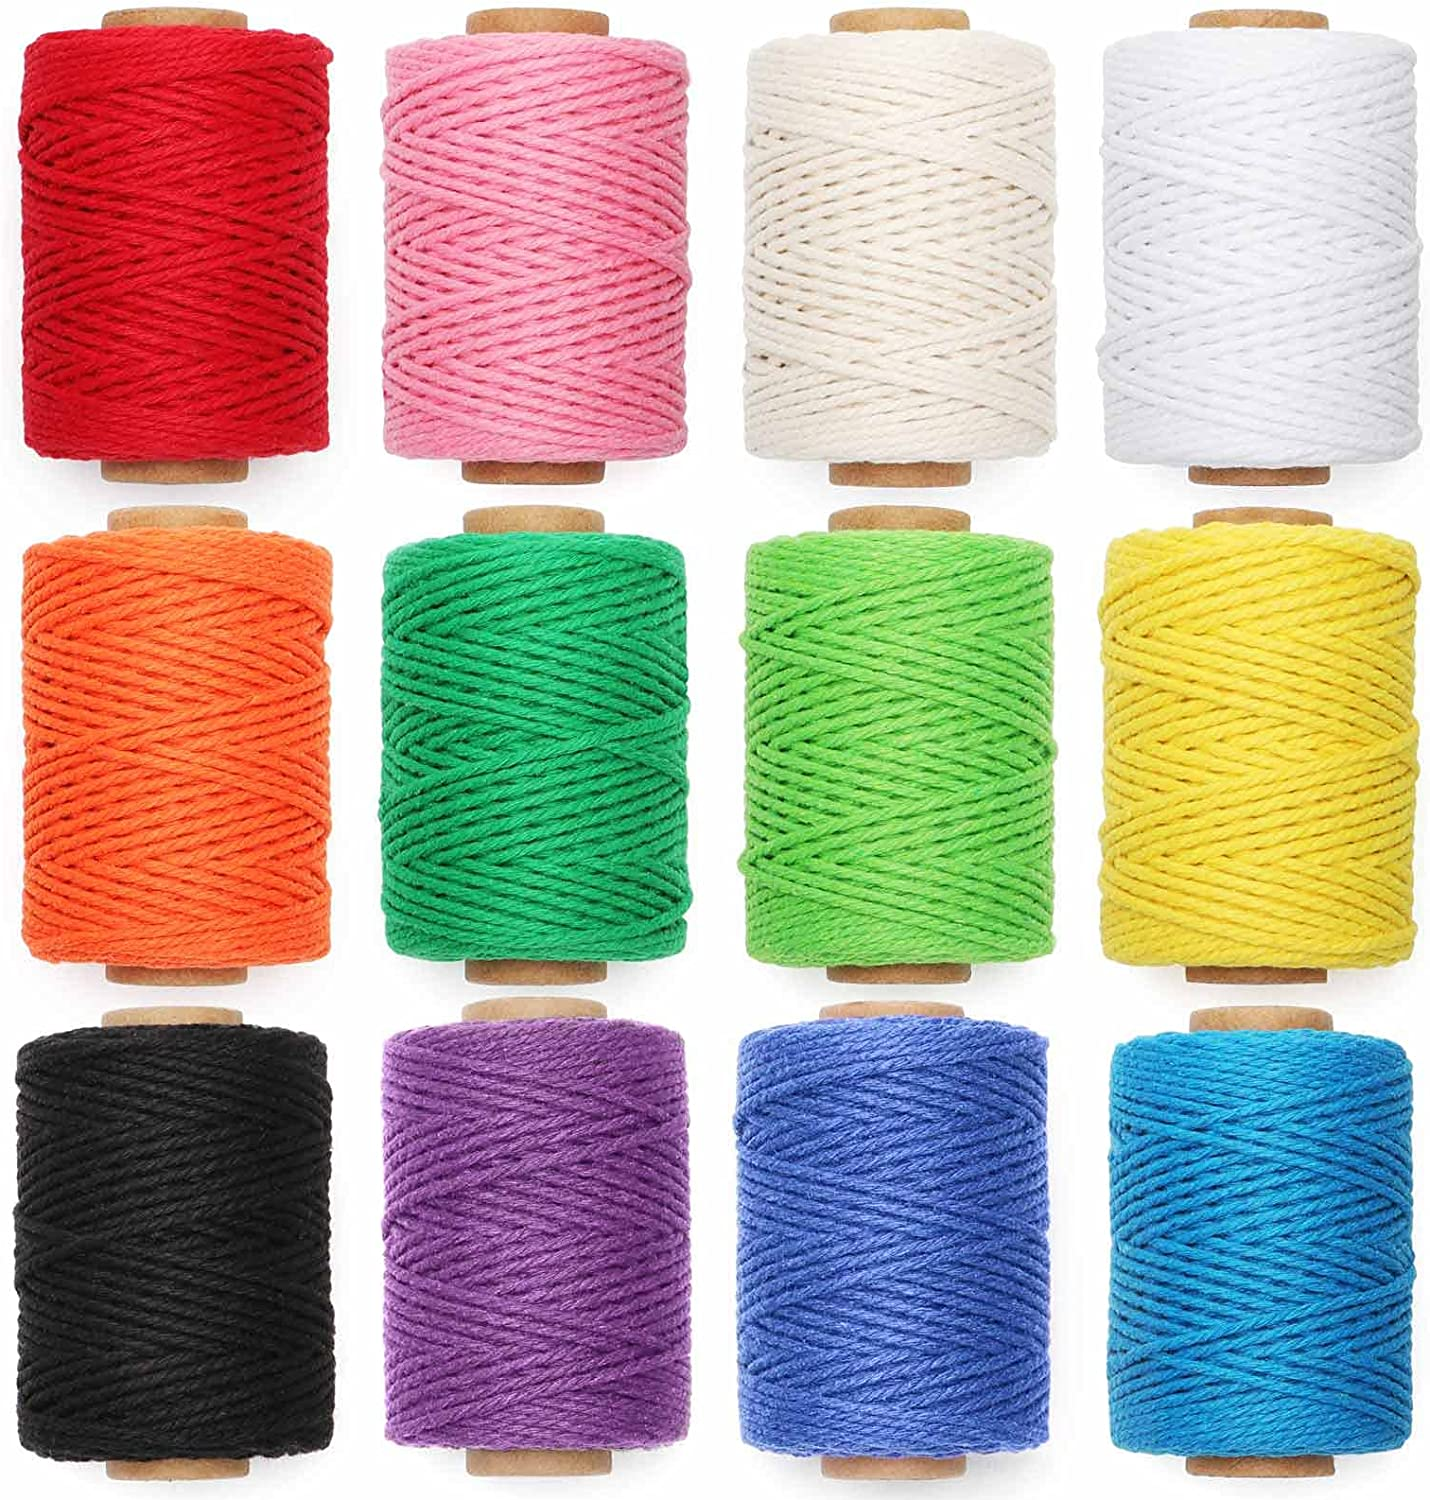 HULISEN 12 Rolls Macrame Cord Natural Colourful 3mm Max 54% OFF Twine Rope favorite